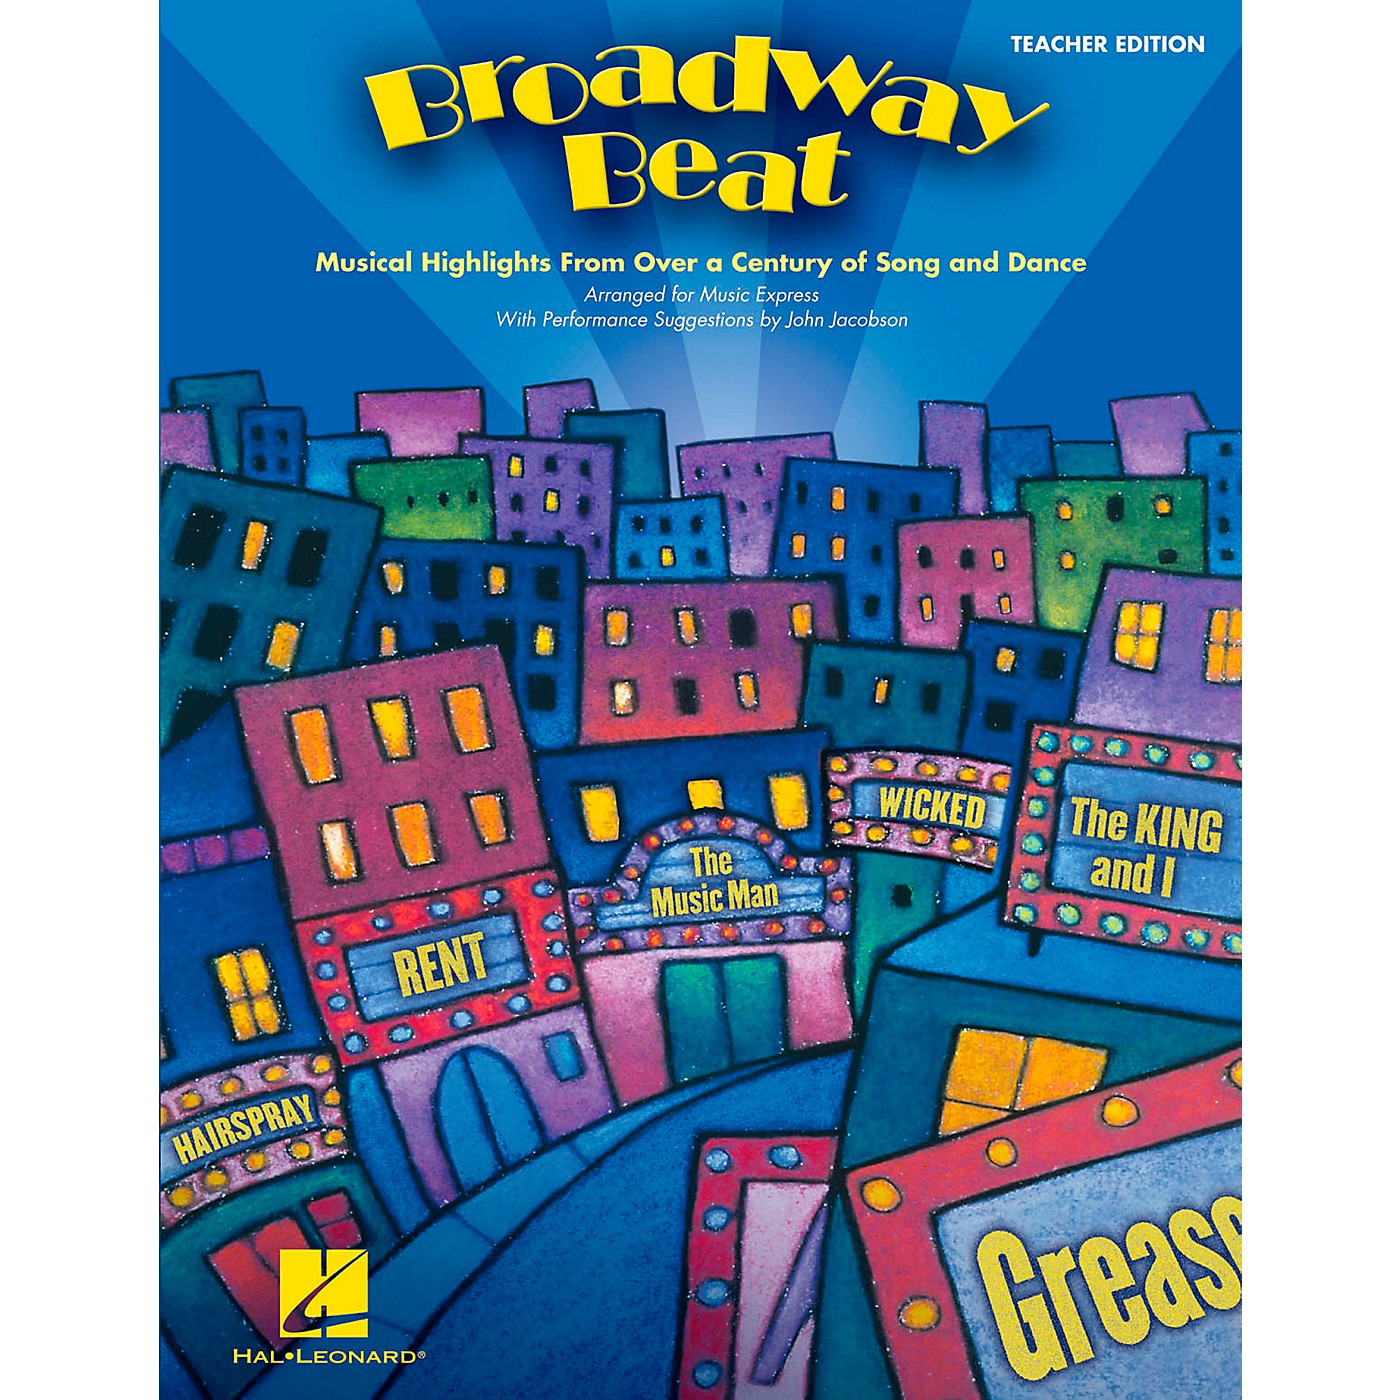 Hal Leonard Broadway Beat - Musical Highlights from Over a Century of Song and Dance Teacher's Edition thumbnail